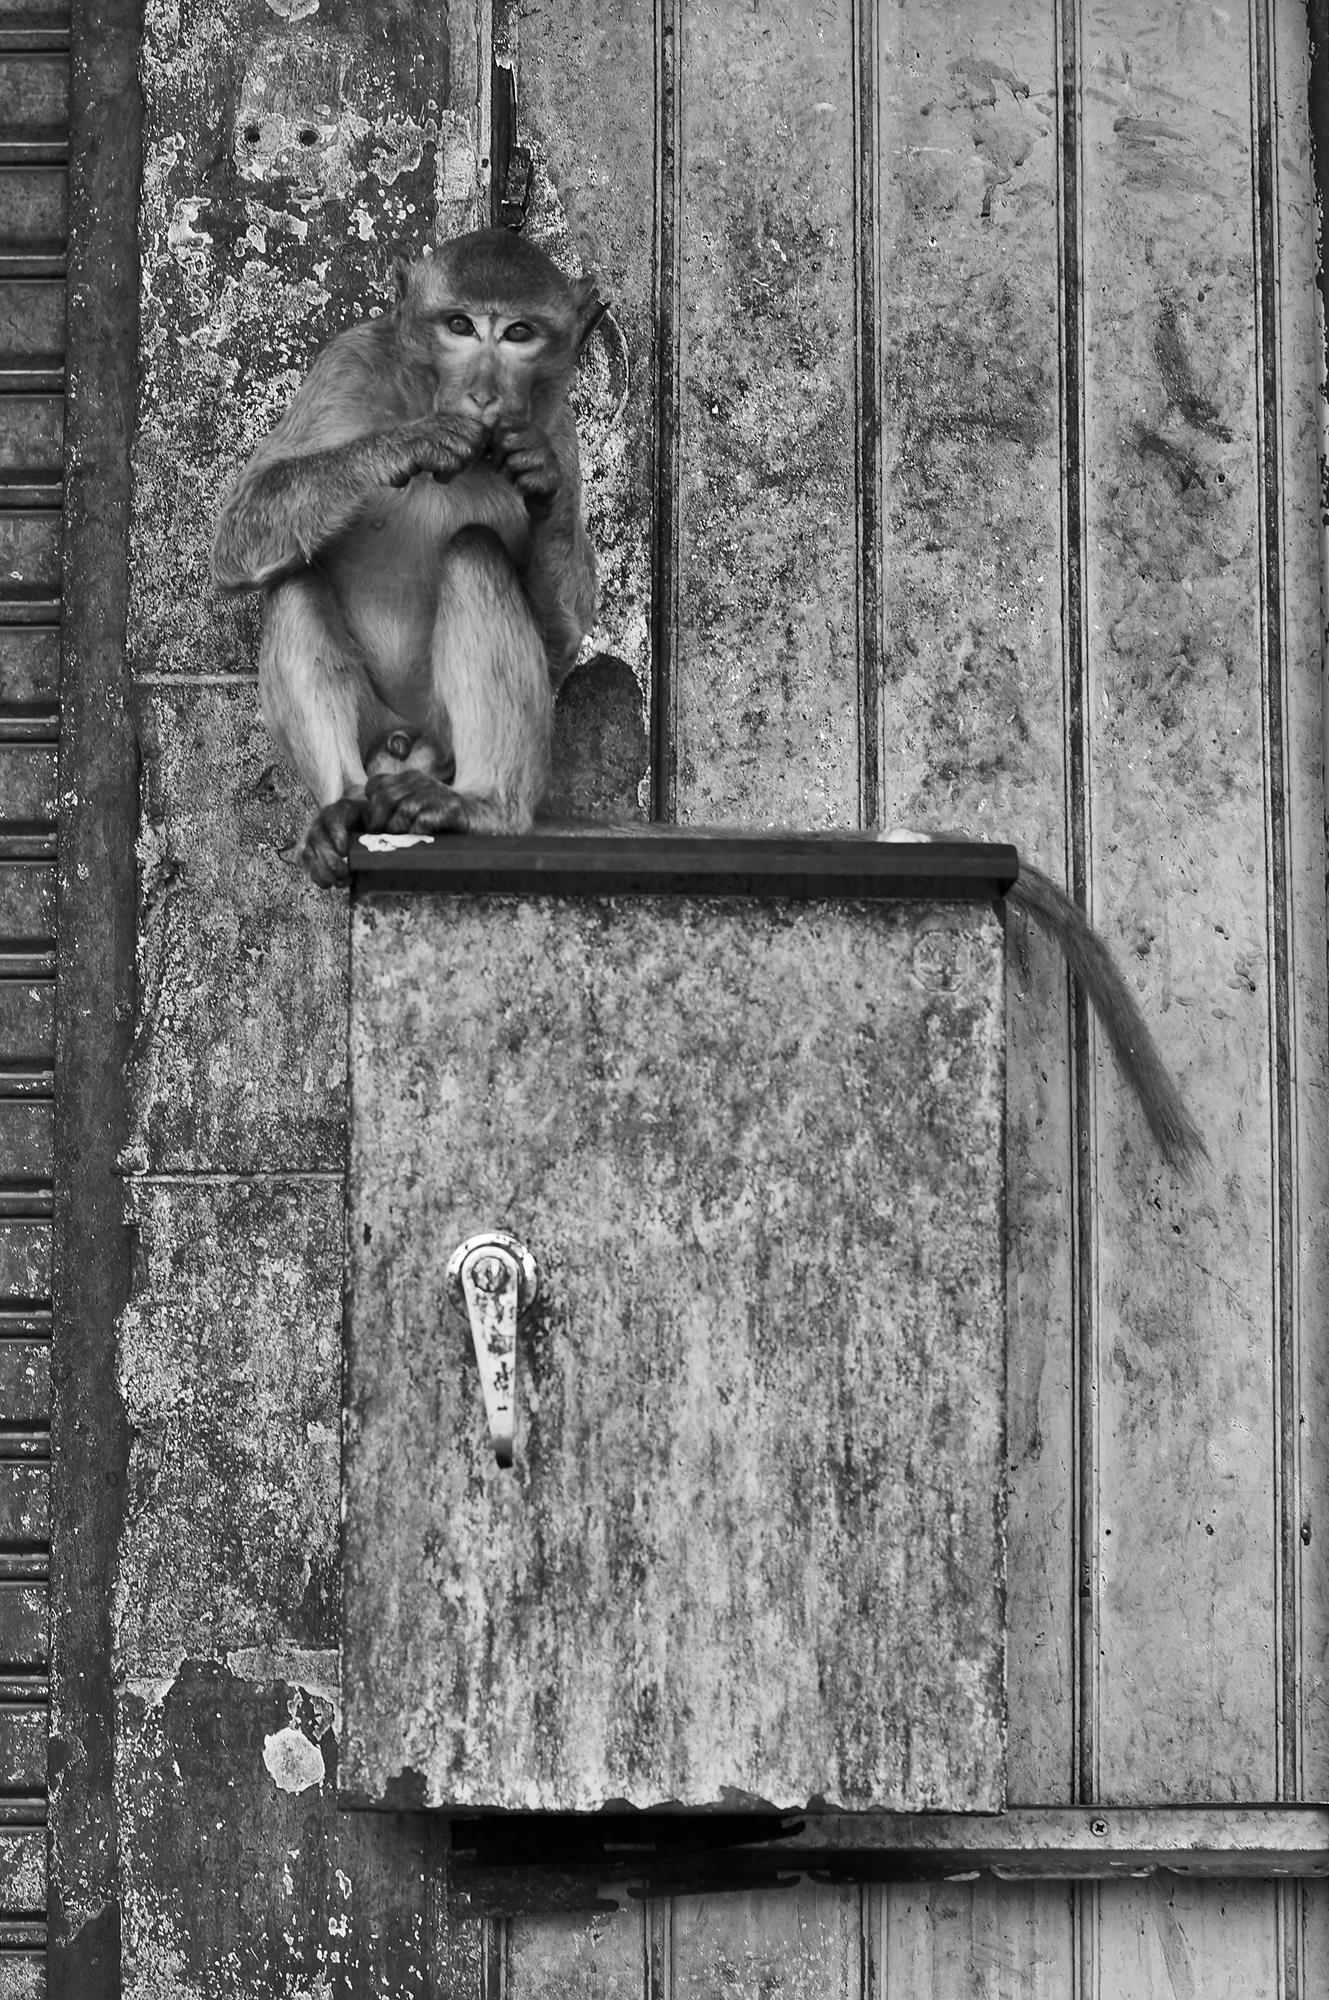 lopburi monkey box